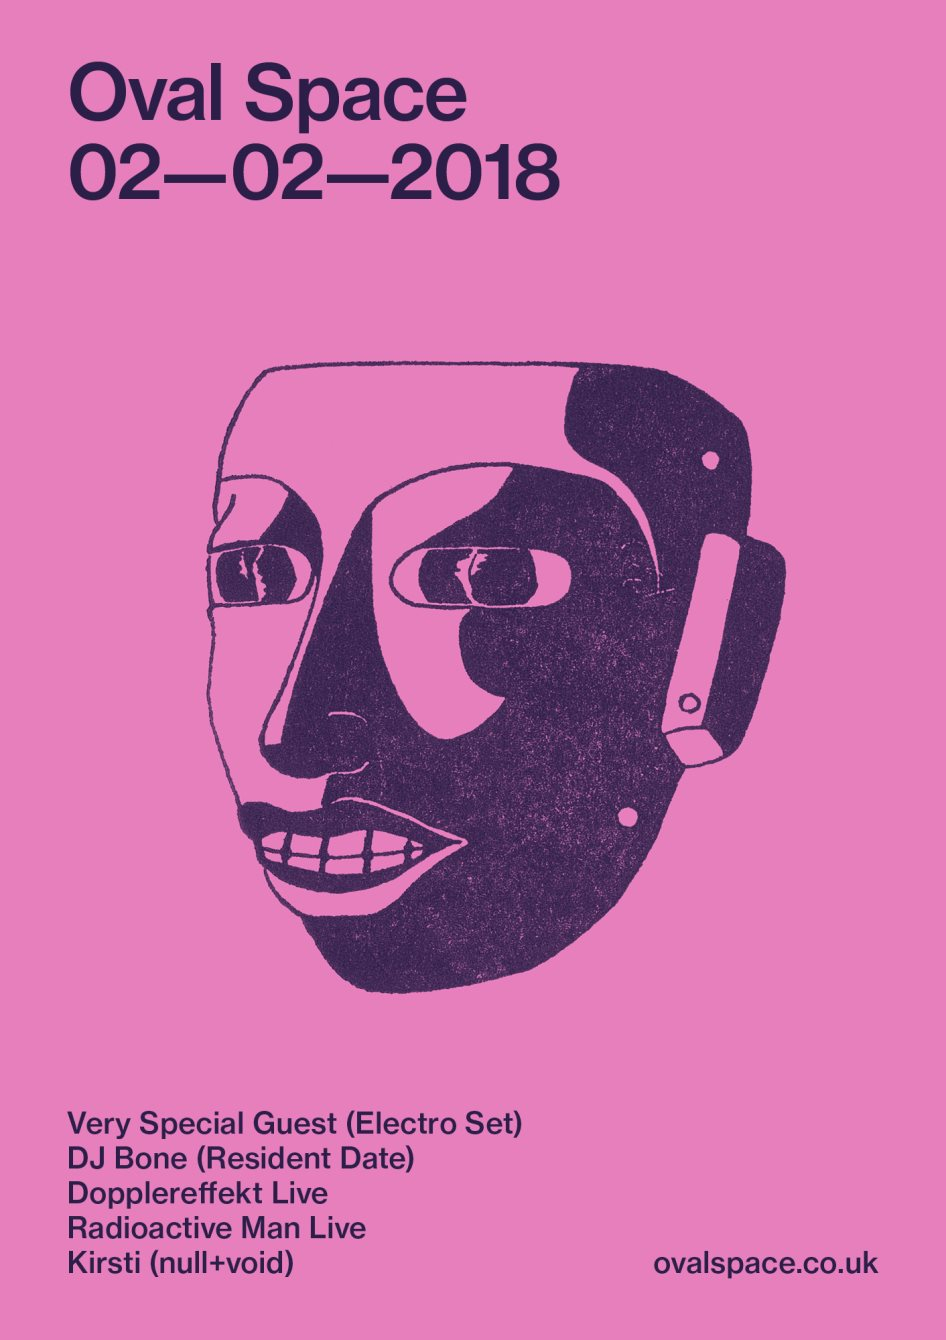 Oval Space with Very Special Guest (Electro Set), DJ Bone, Dopplereffekt Live, Radioactive Man - Flyer front